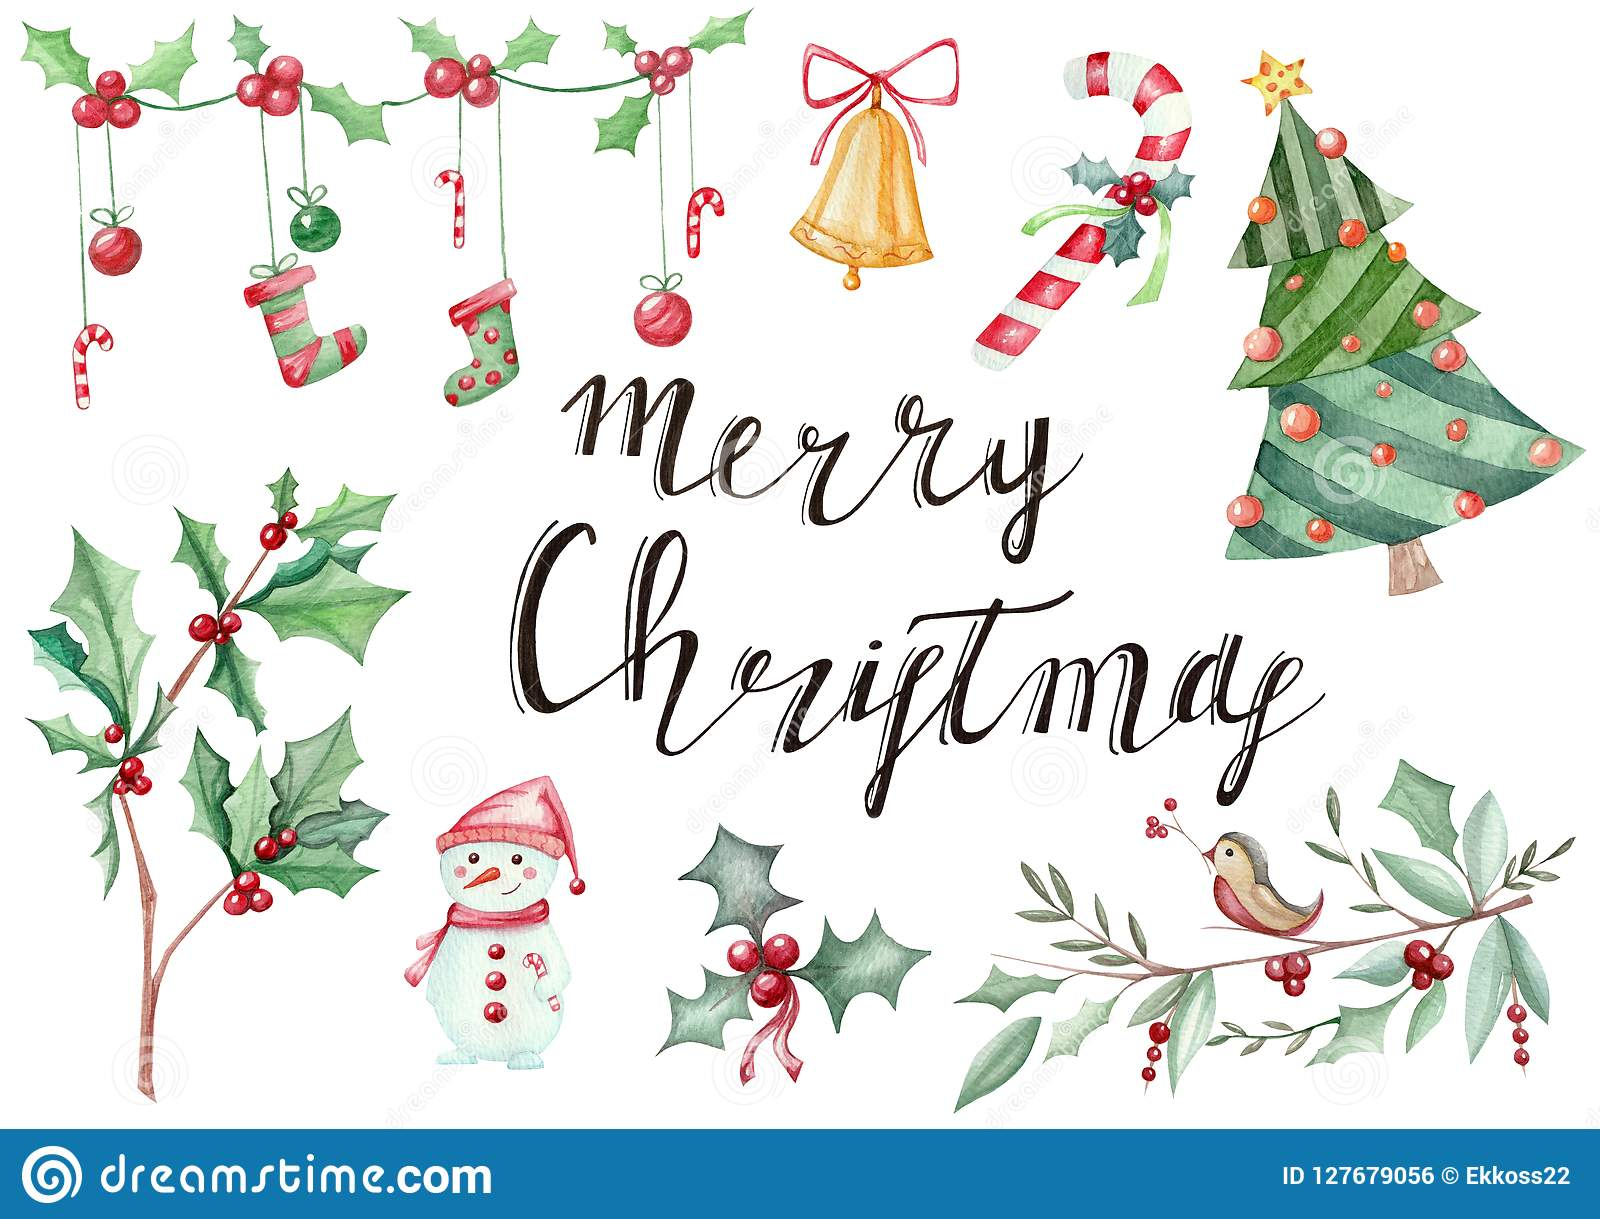 Illustration hand drawn with New Year`s Christmas symbolics